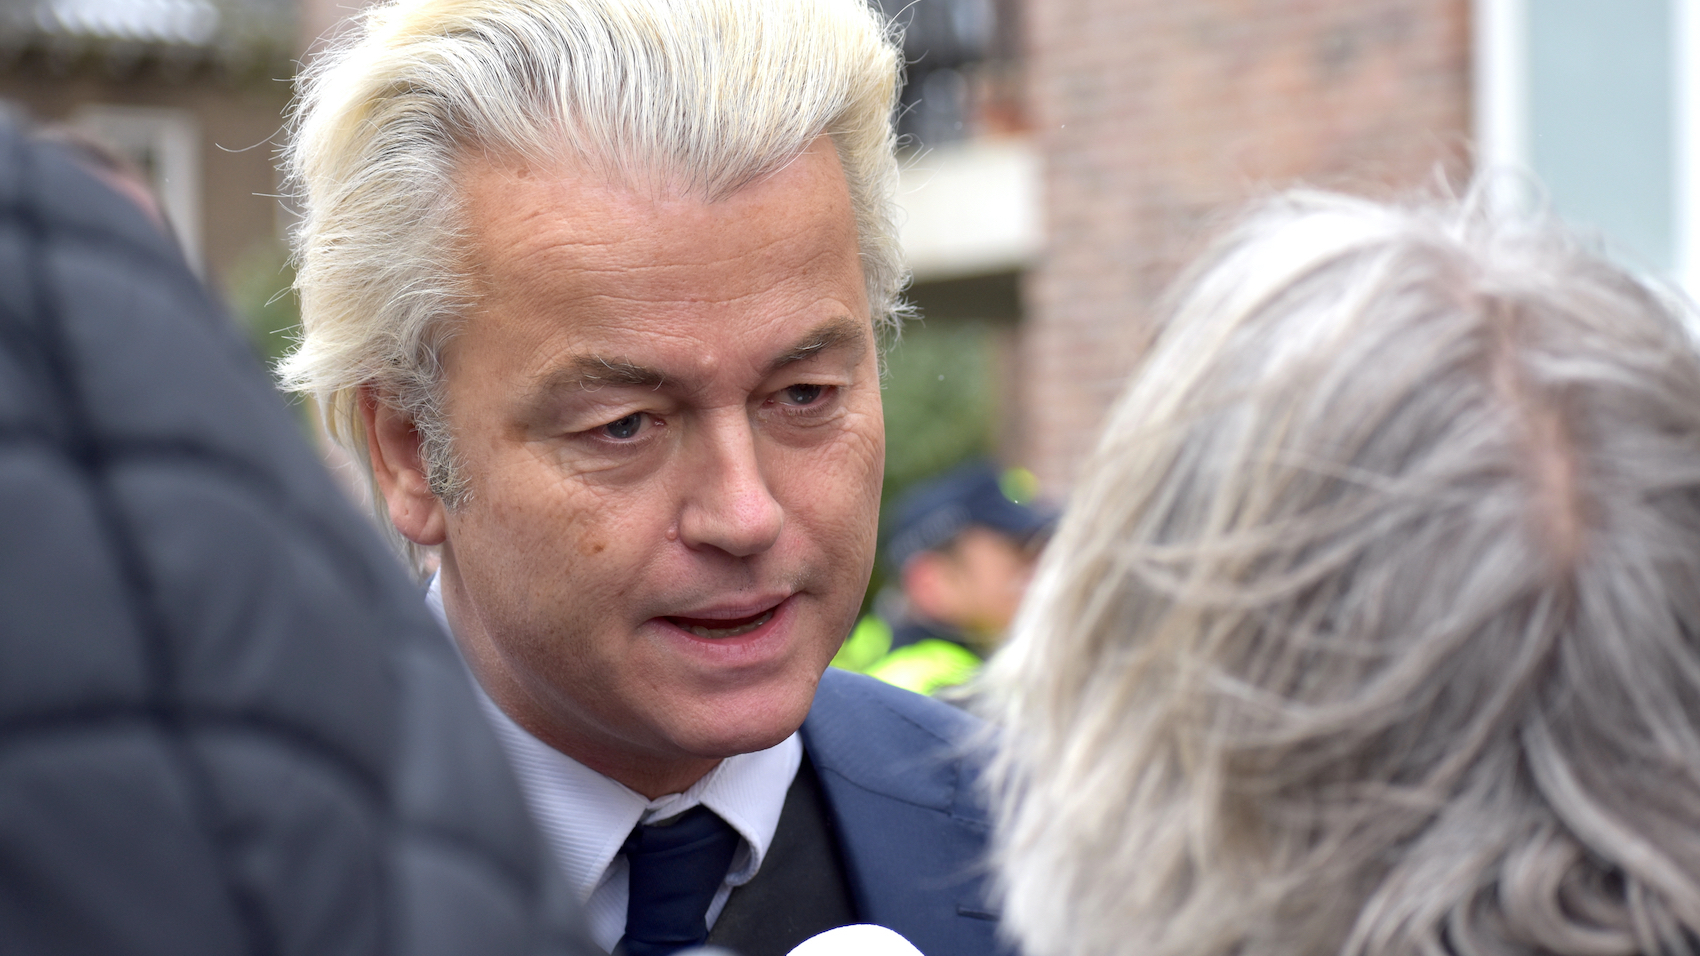 Dutch right-wing populist Geert Wilders campaigns on behalf of his Freedom Party ahead of municipal elections in Spijkenisse, Netherlands on March 17 2018.